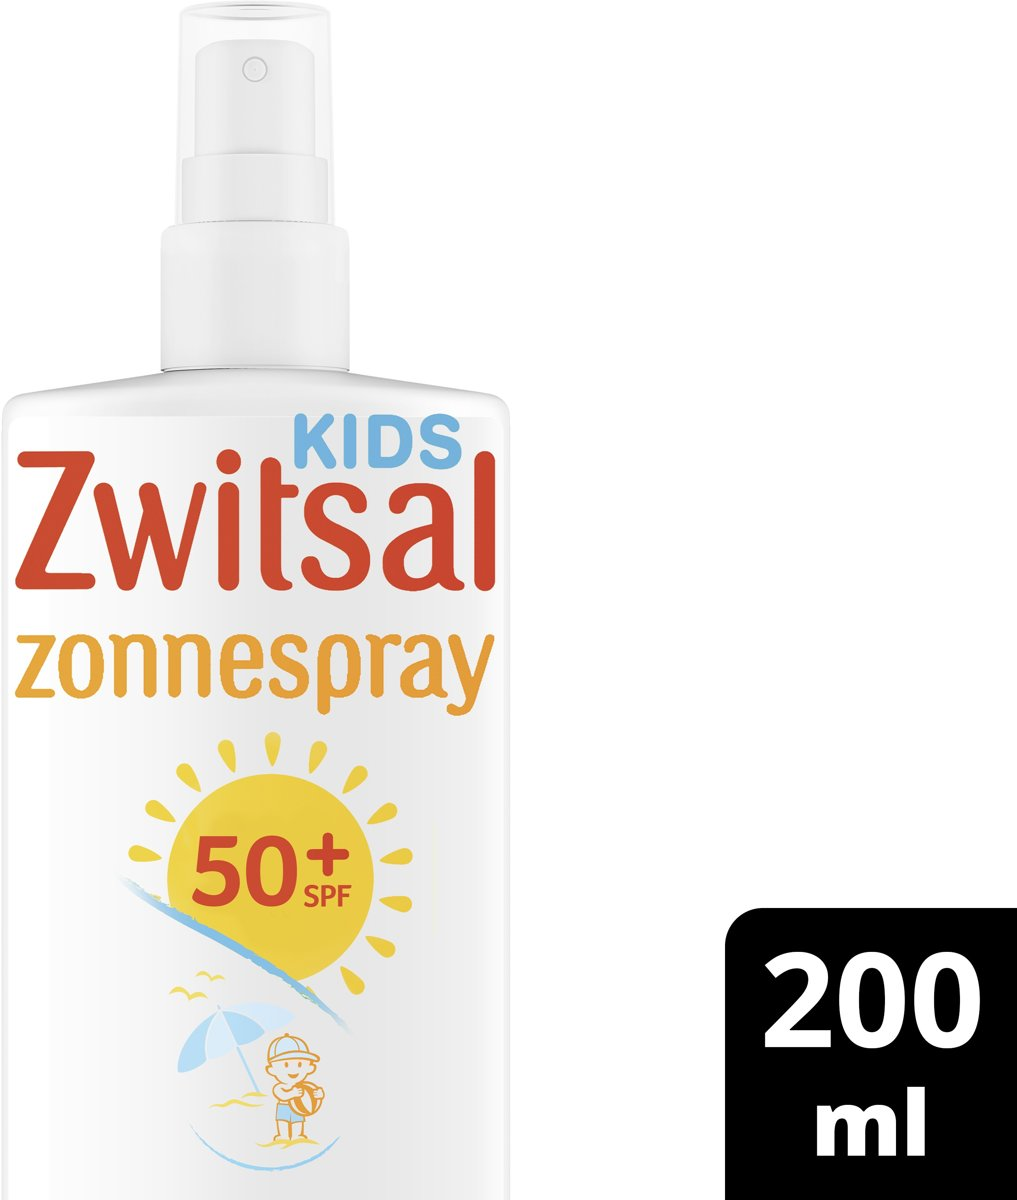 Zwitsal Kids SPF 50+ 0%parfum Zonnespray 200 ml